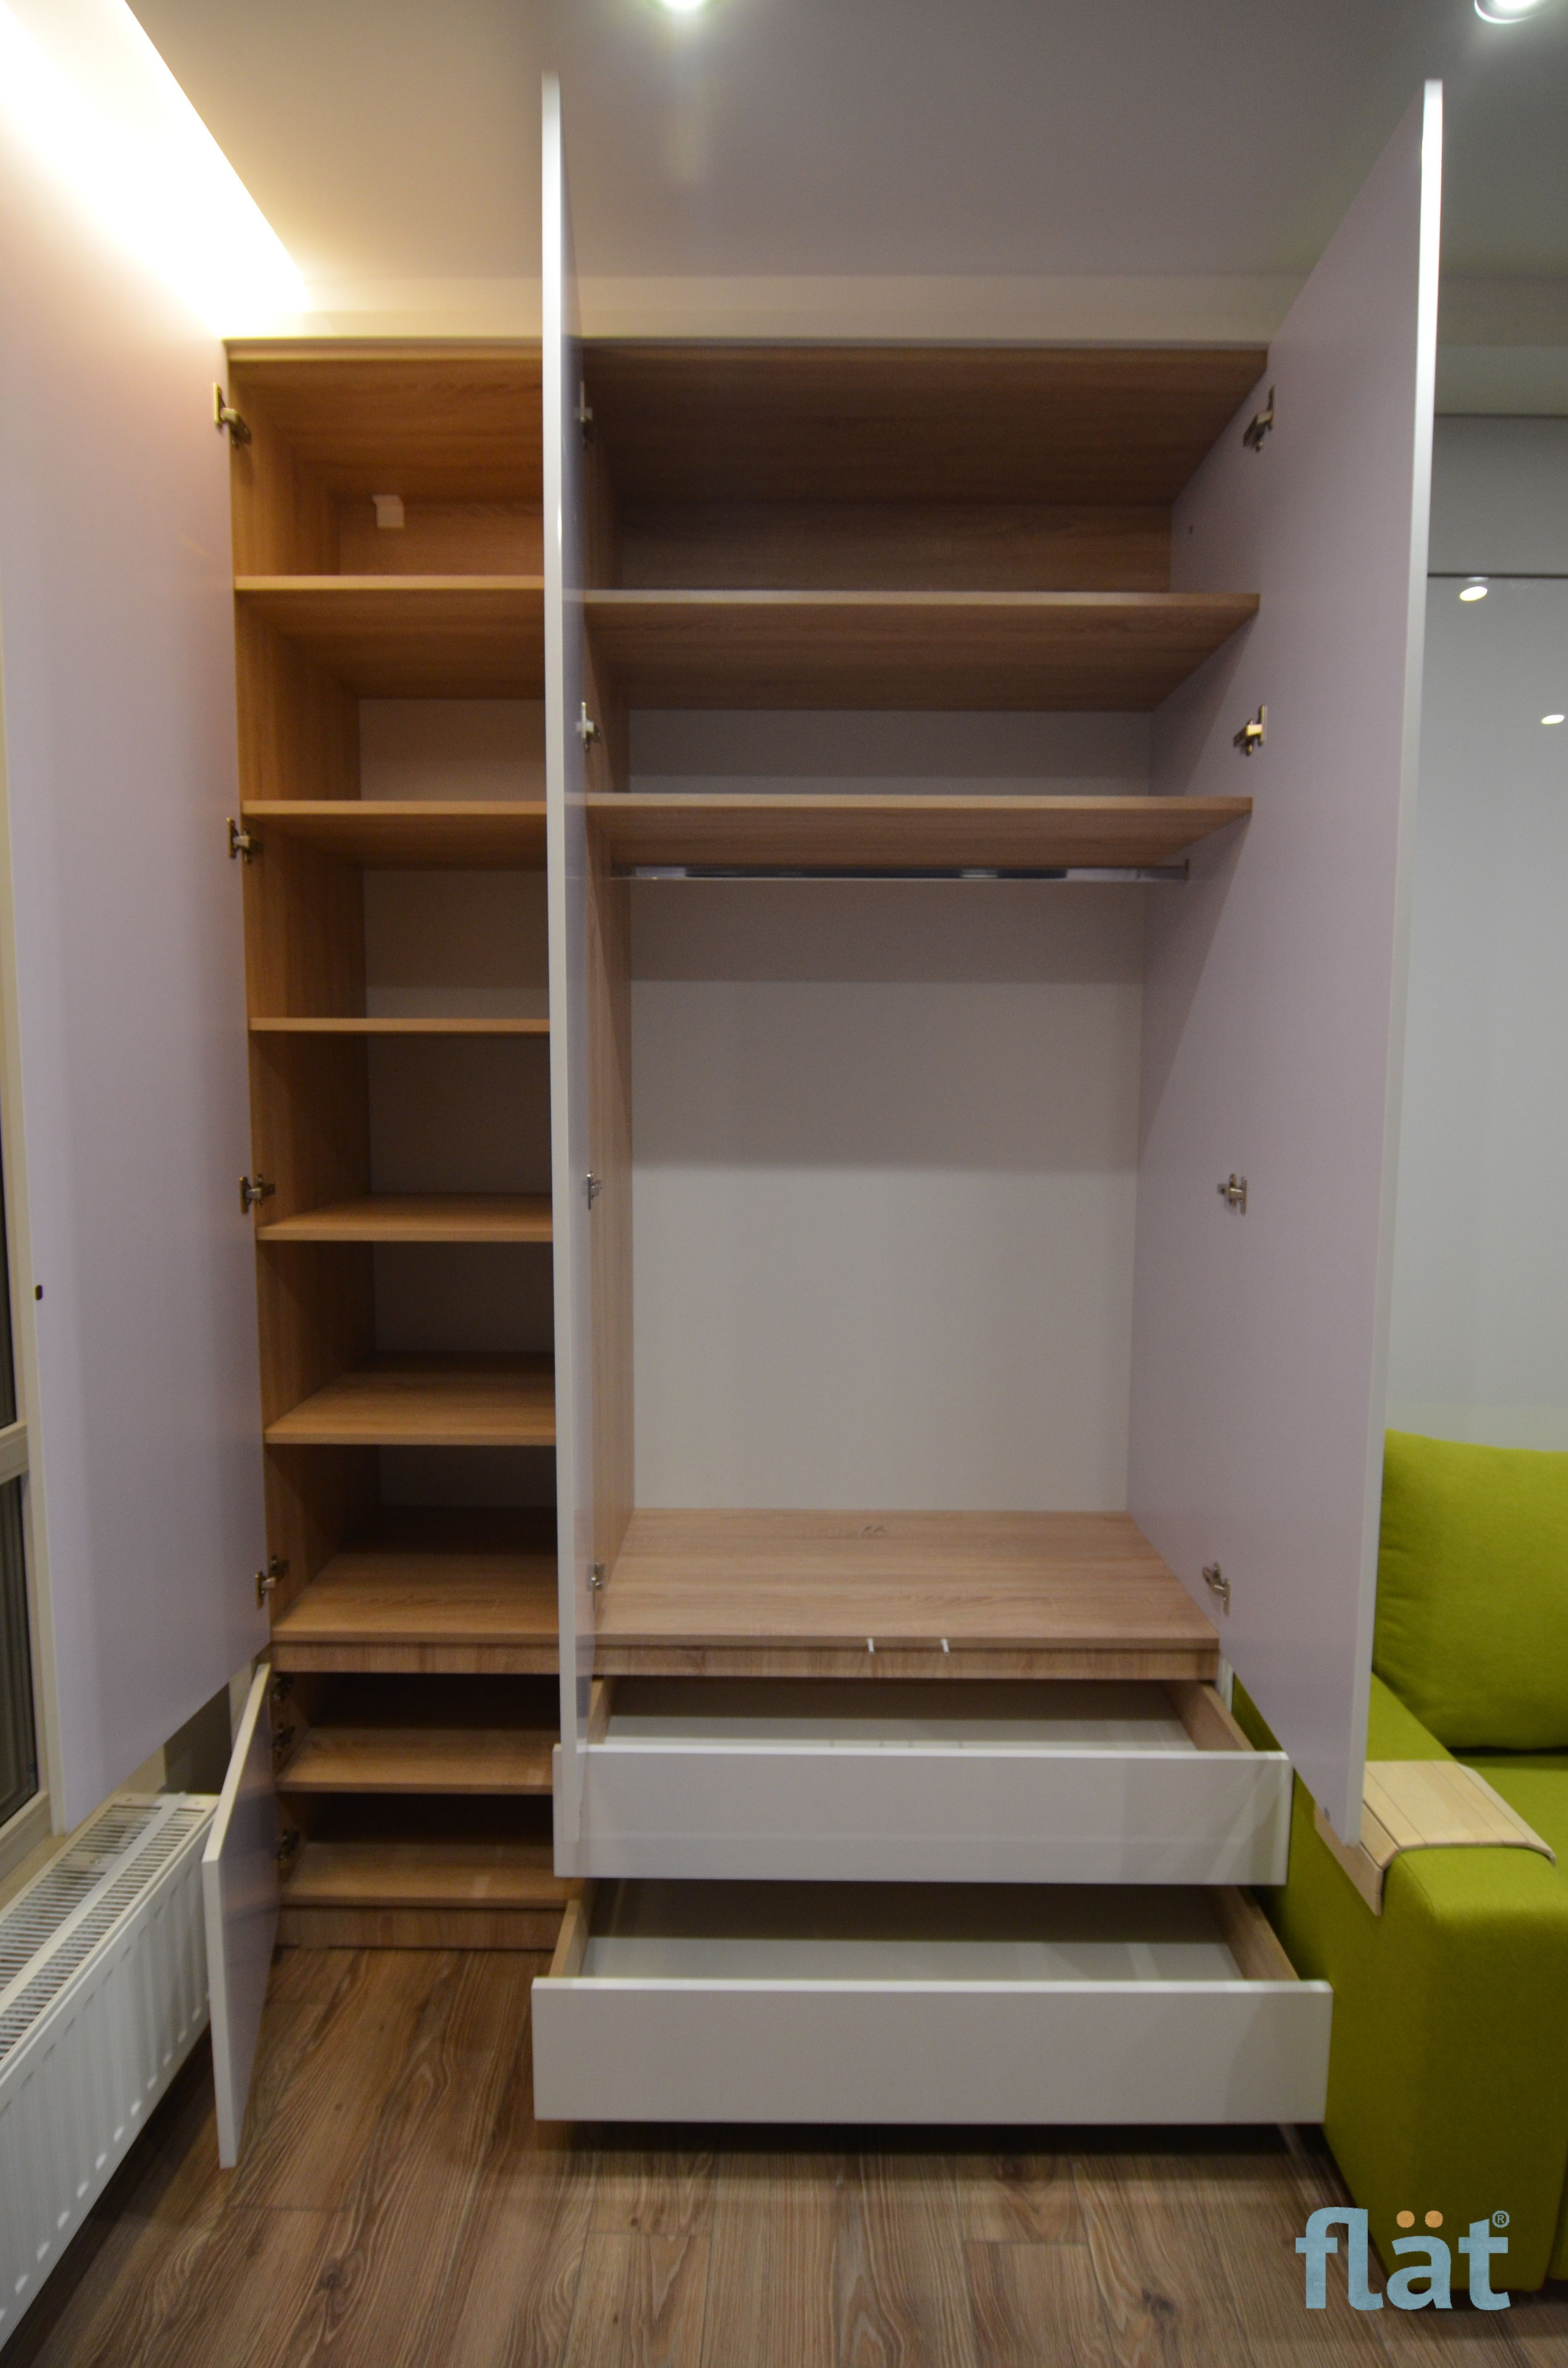 Big Wall. Queen size wall bed and storage. Шкаф кровать